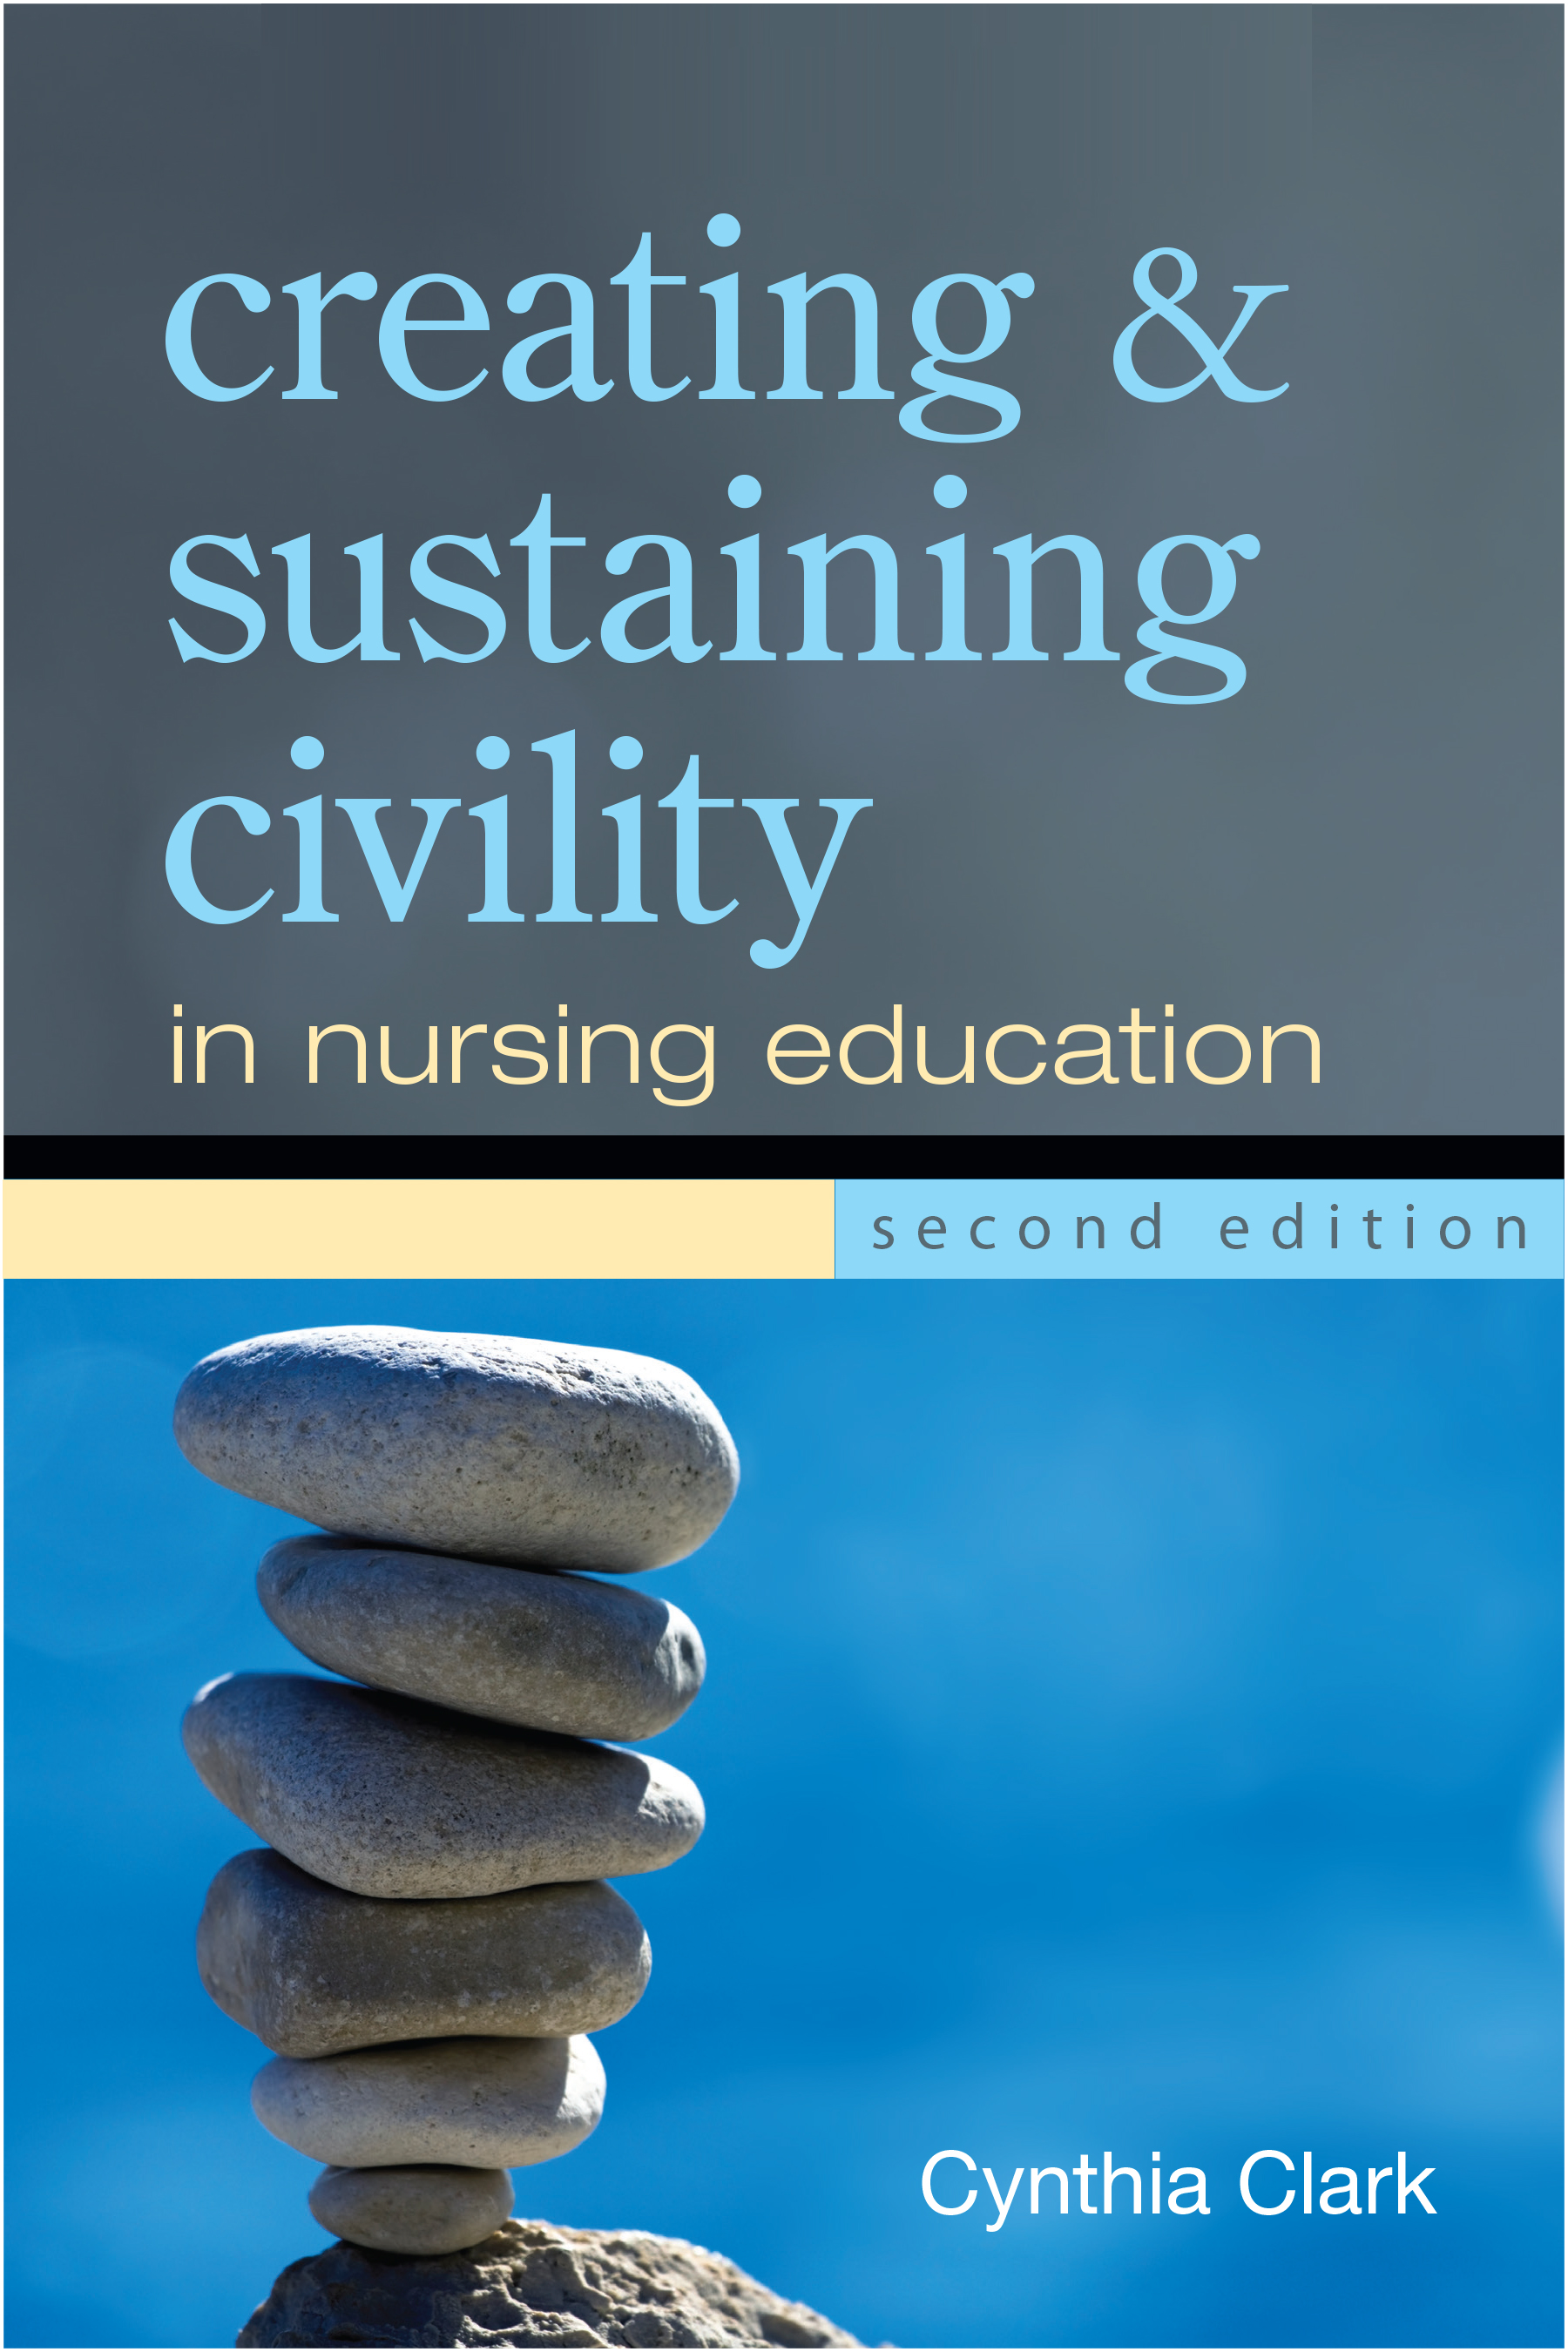 Creating & Sustaining Civility in Nursing Education, Second Edition